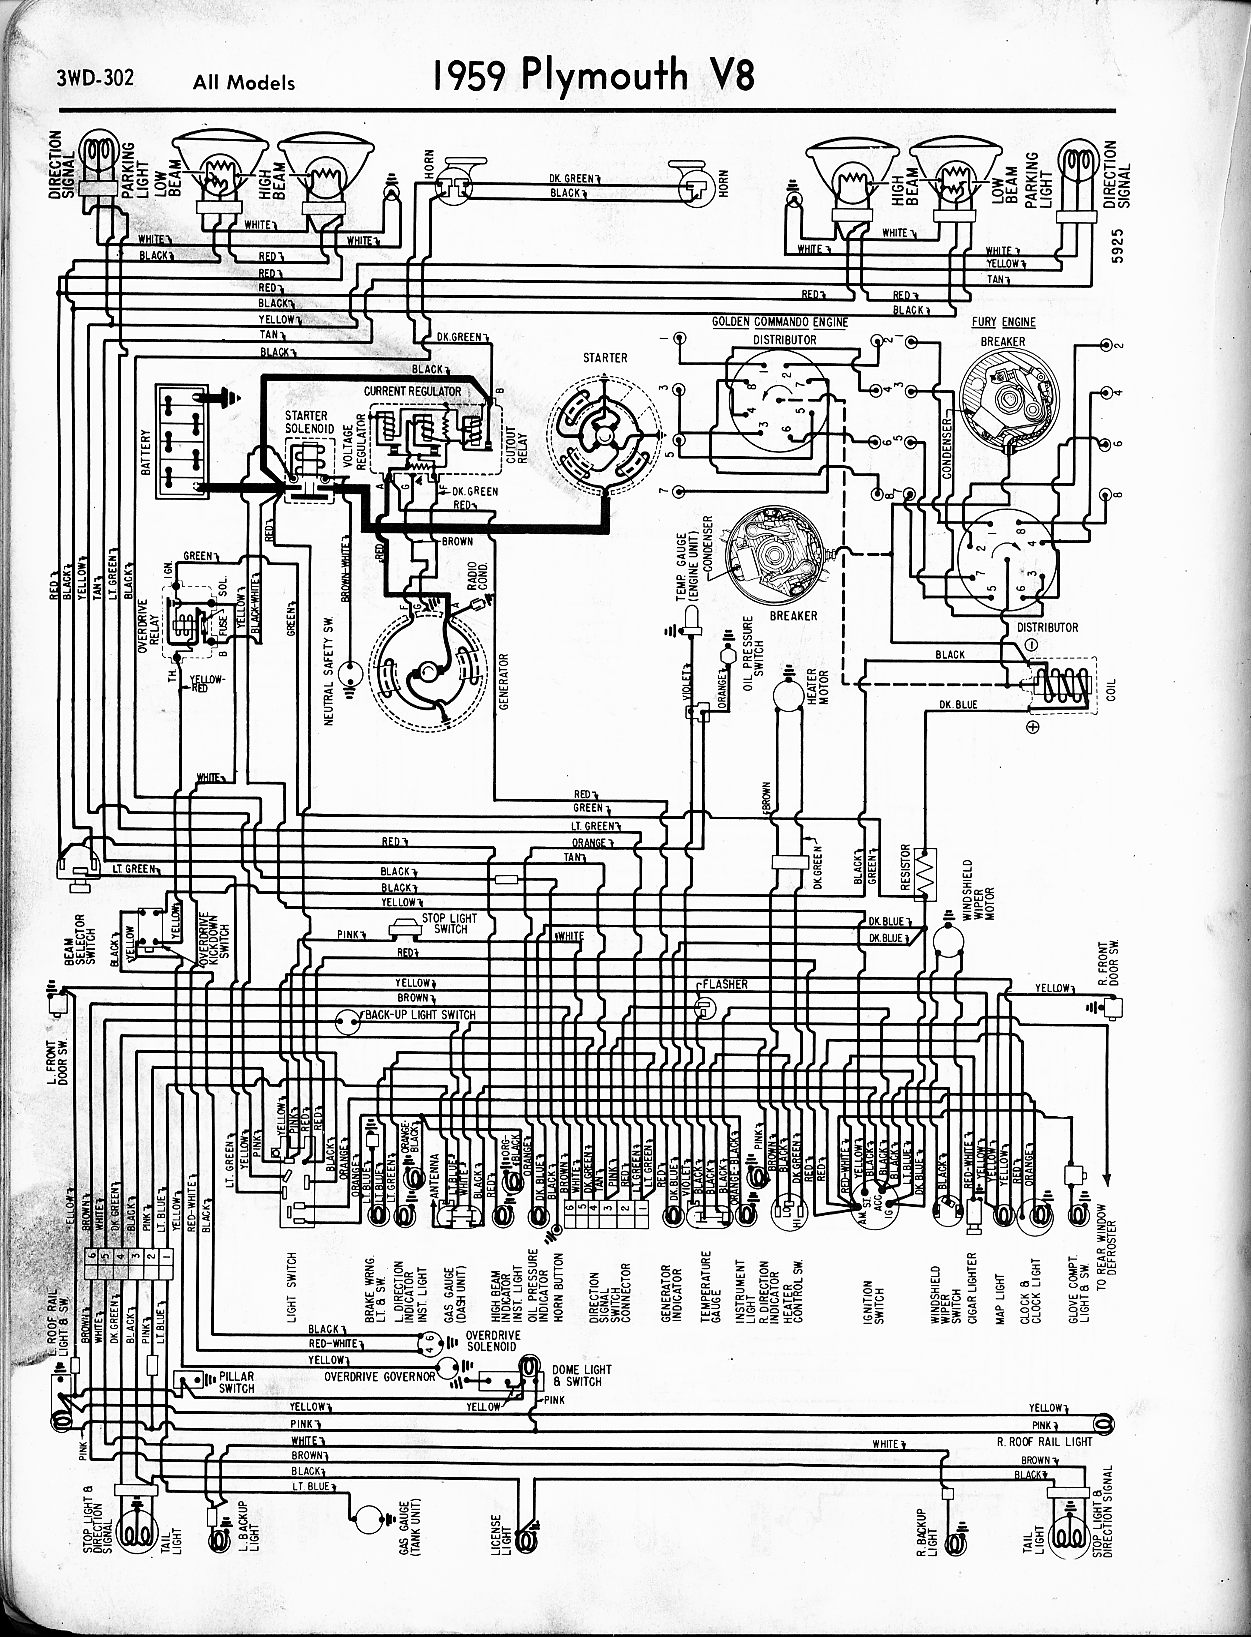 1956 - 1965 plymouth wiring - the old car manual project plymouth alarm wiring diagram #3